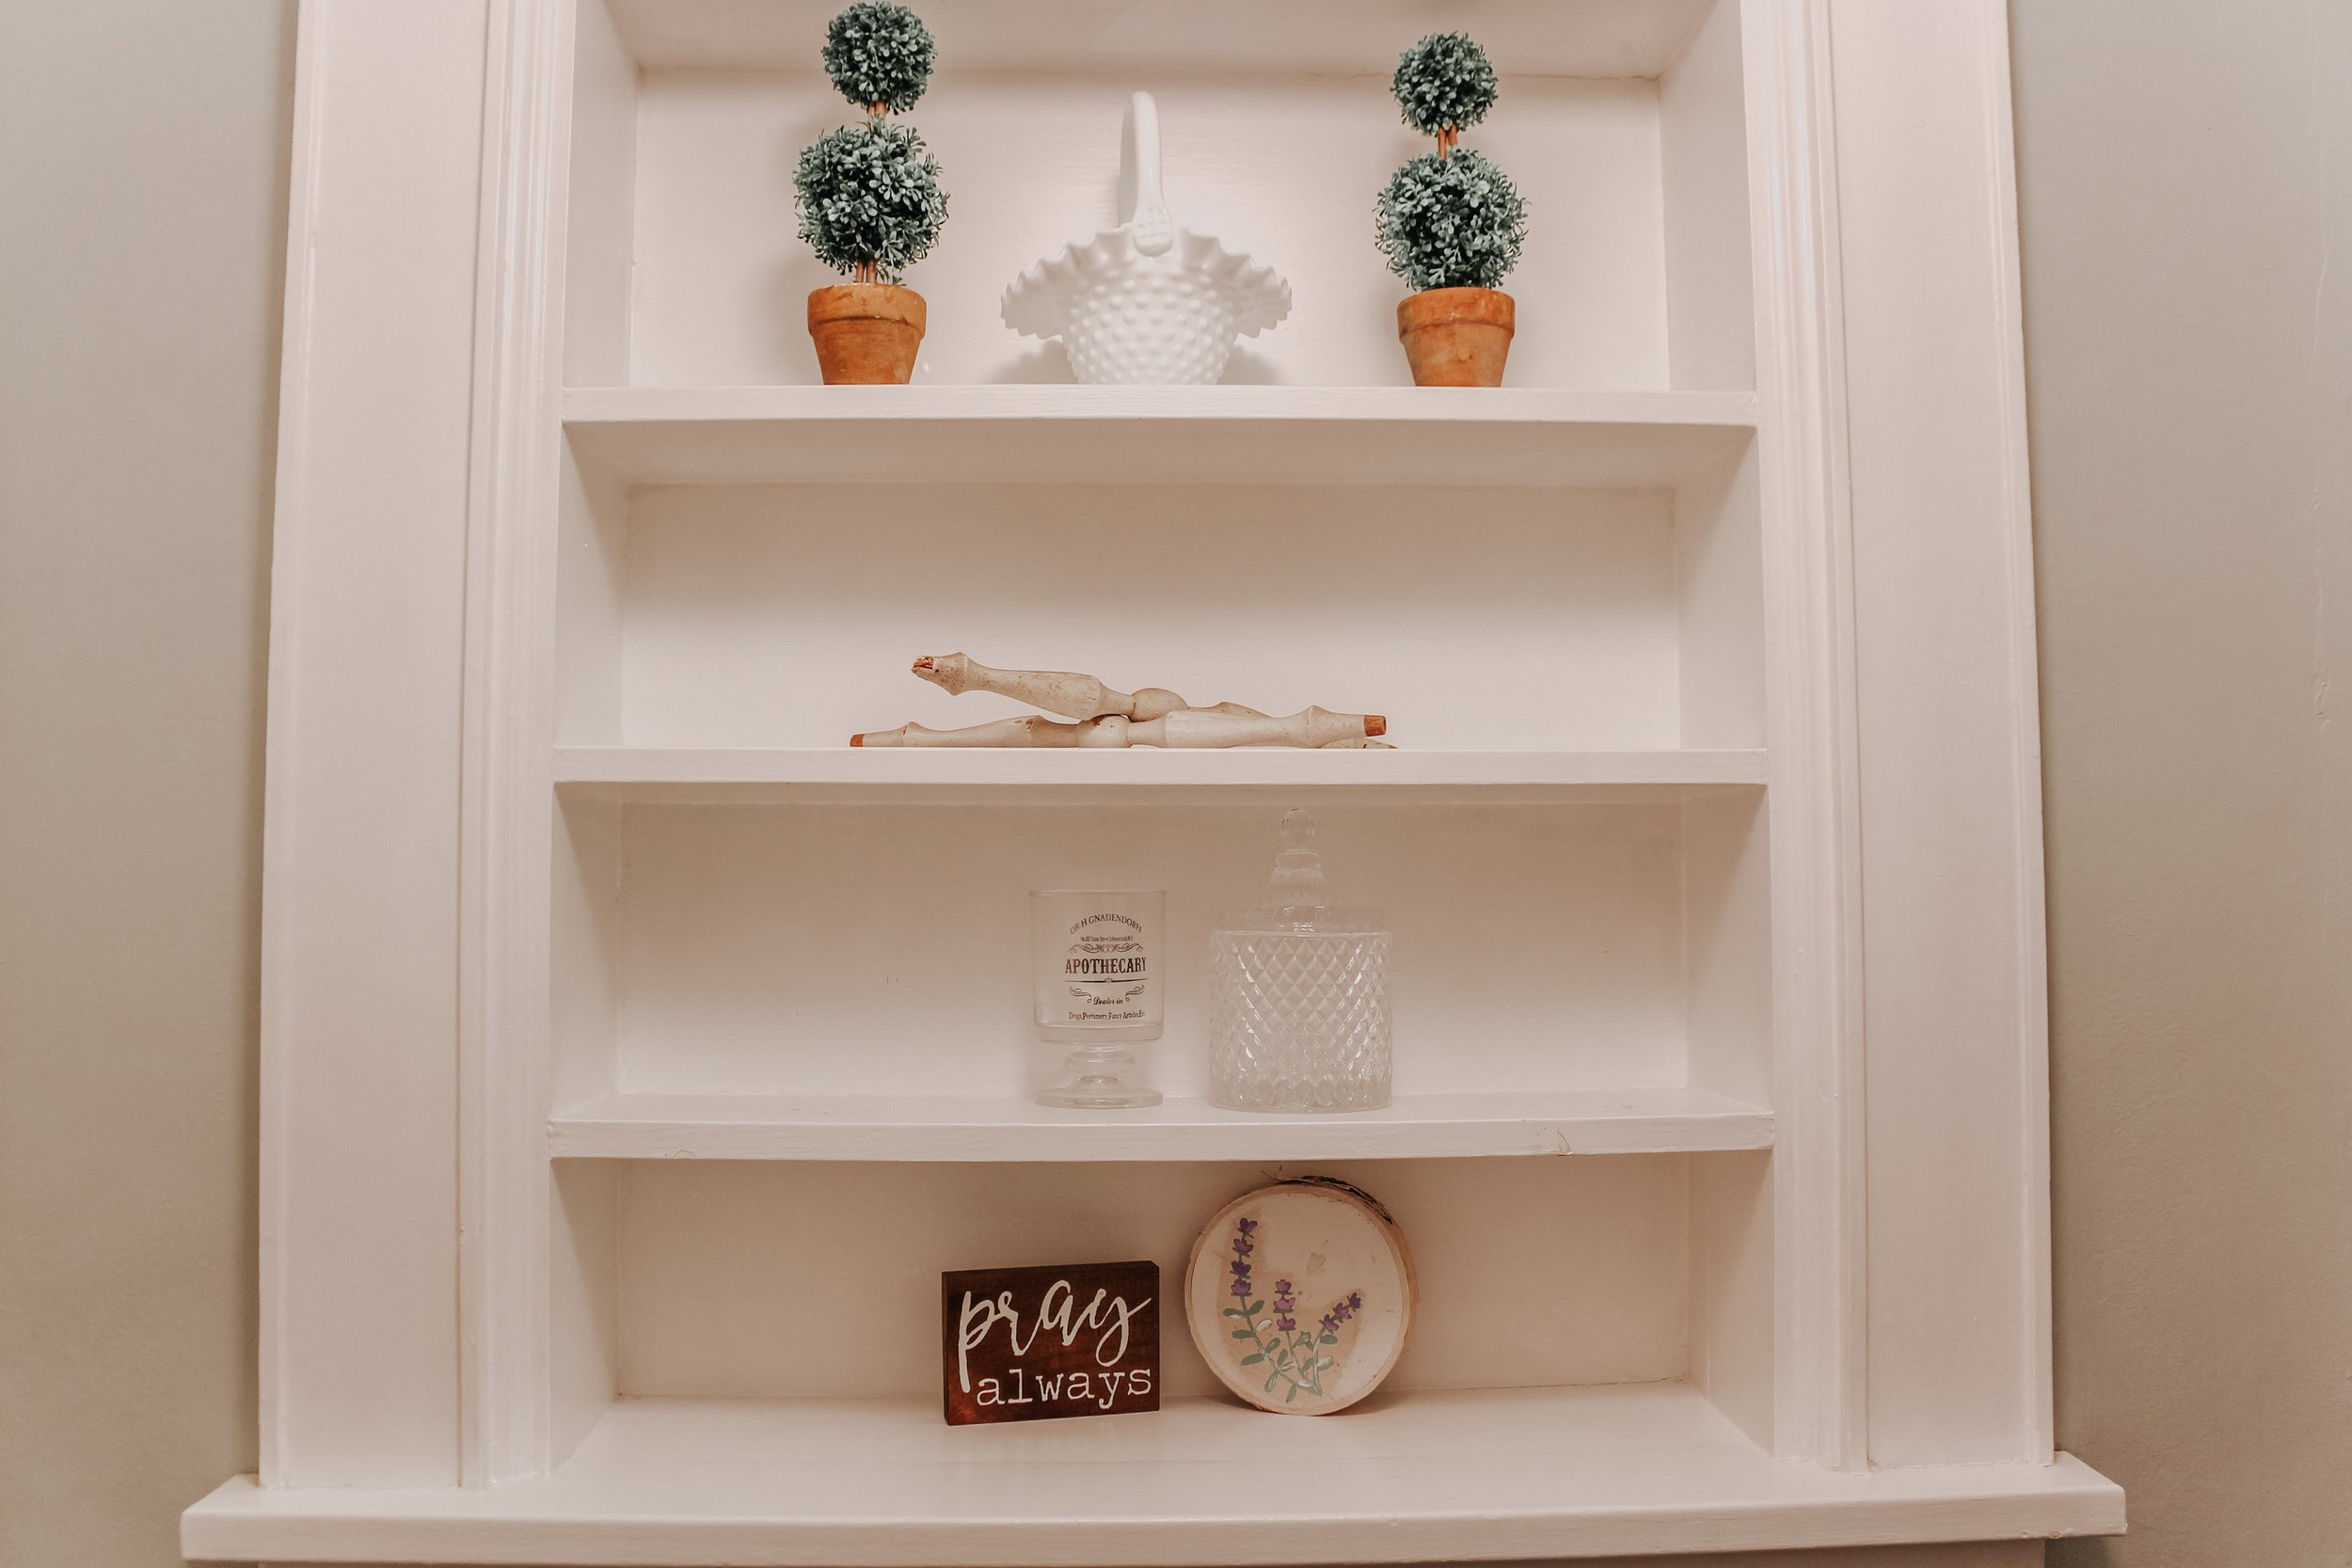 Bathroom Shelving Updates